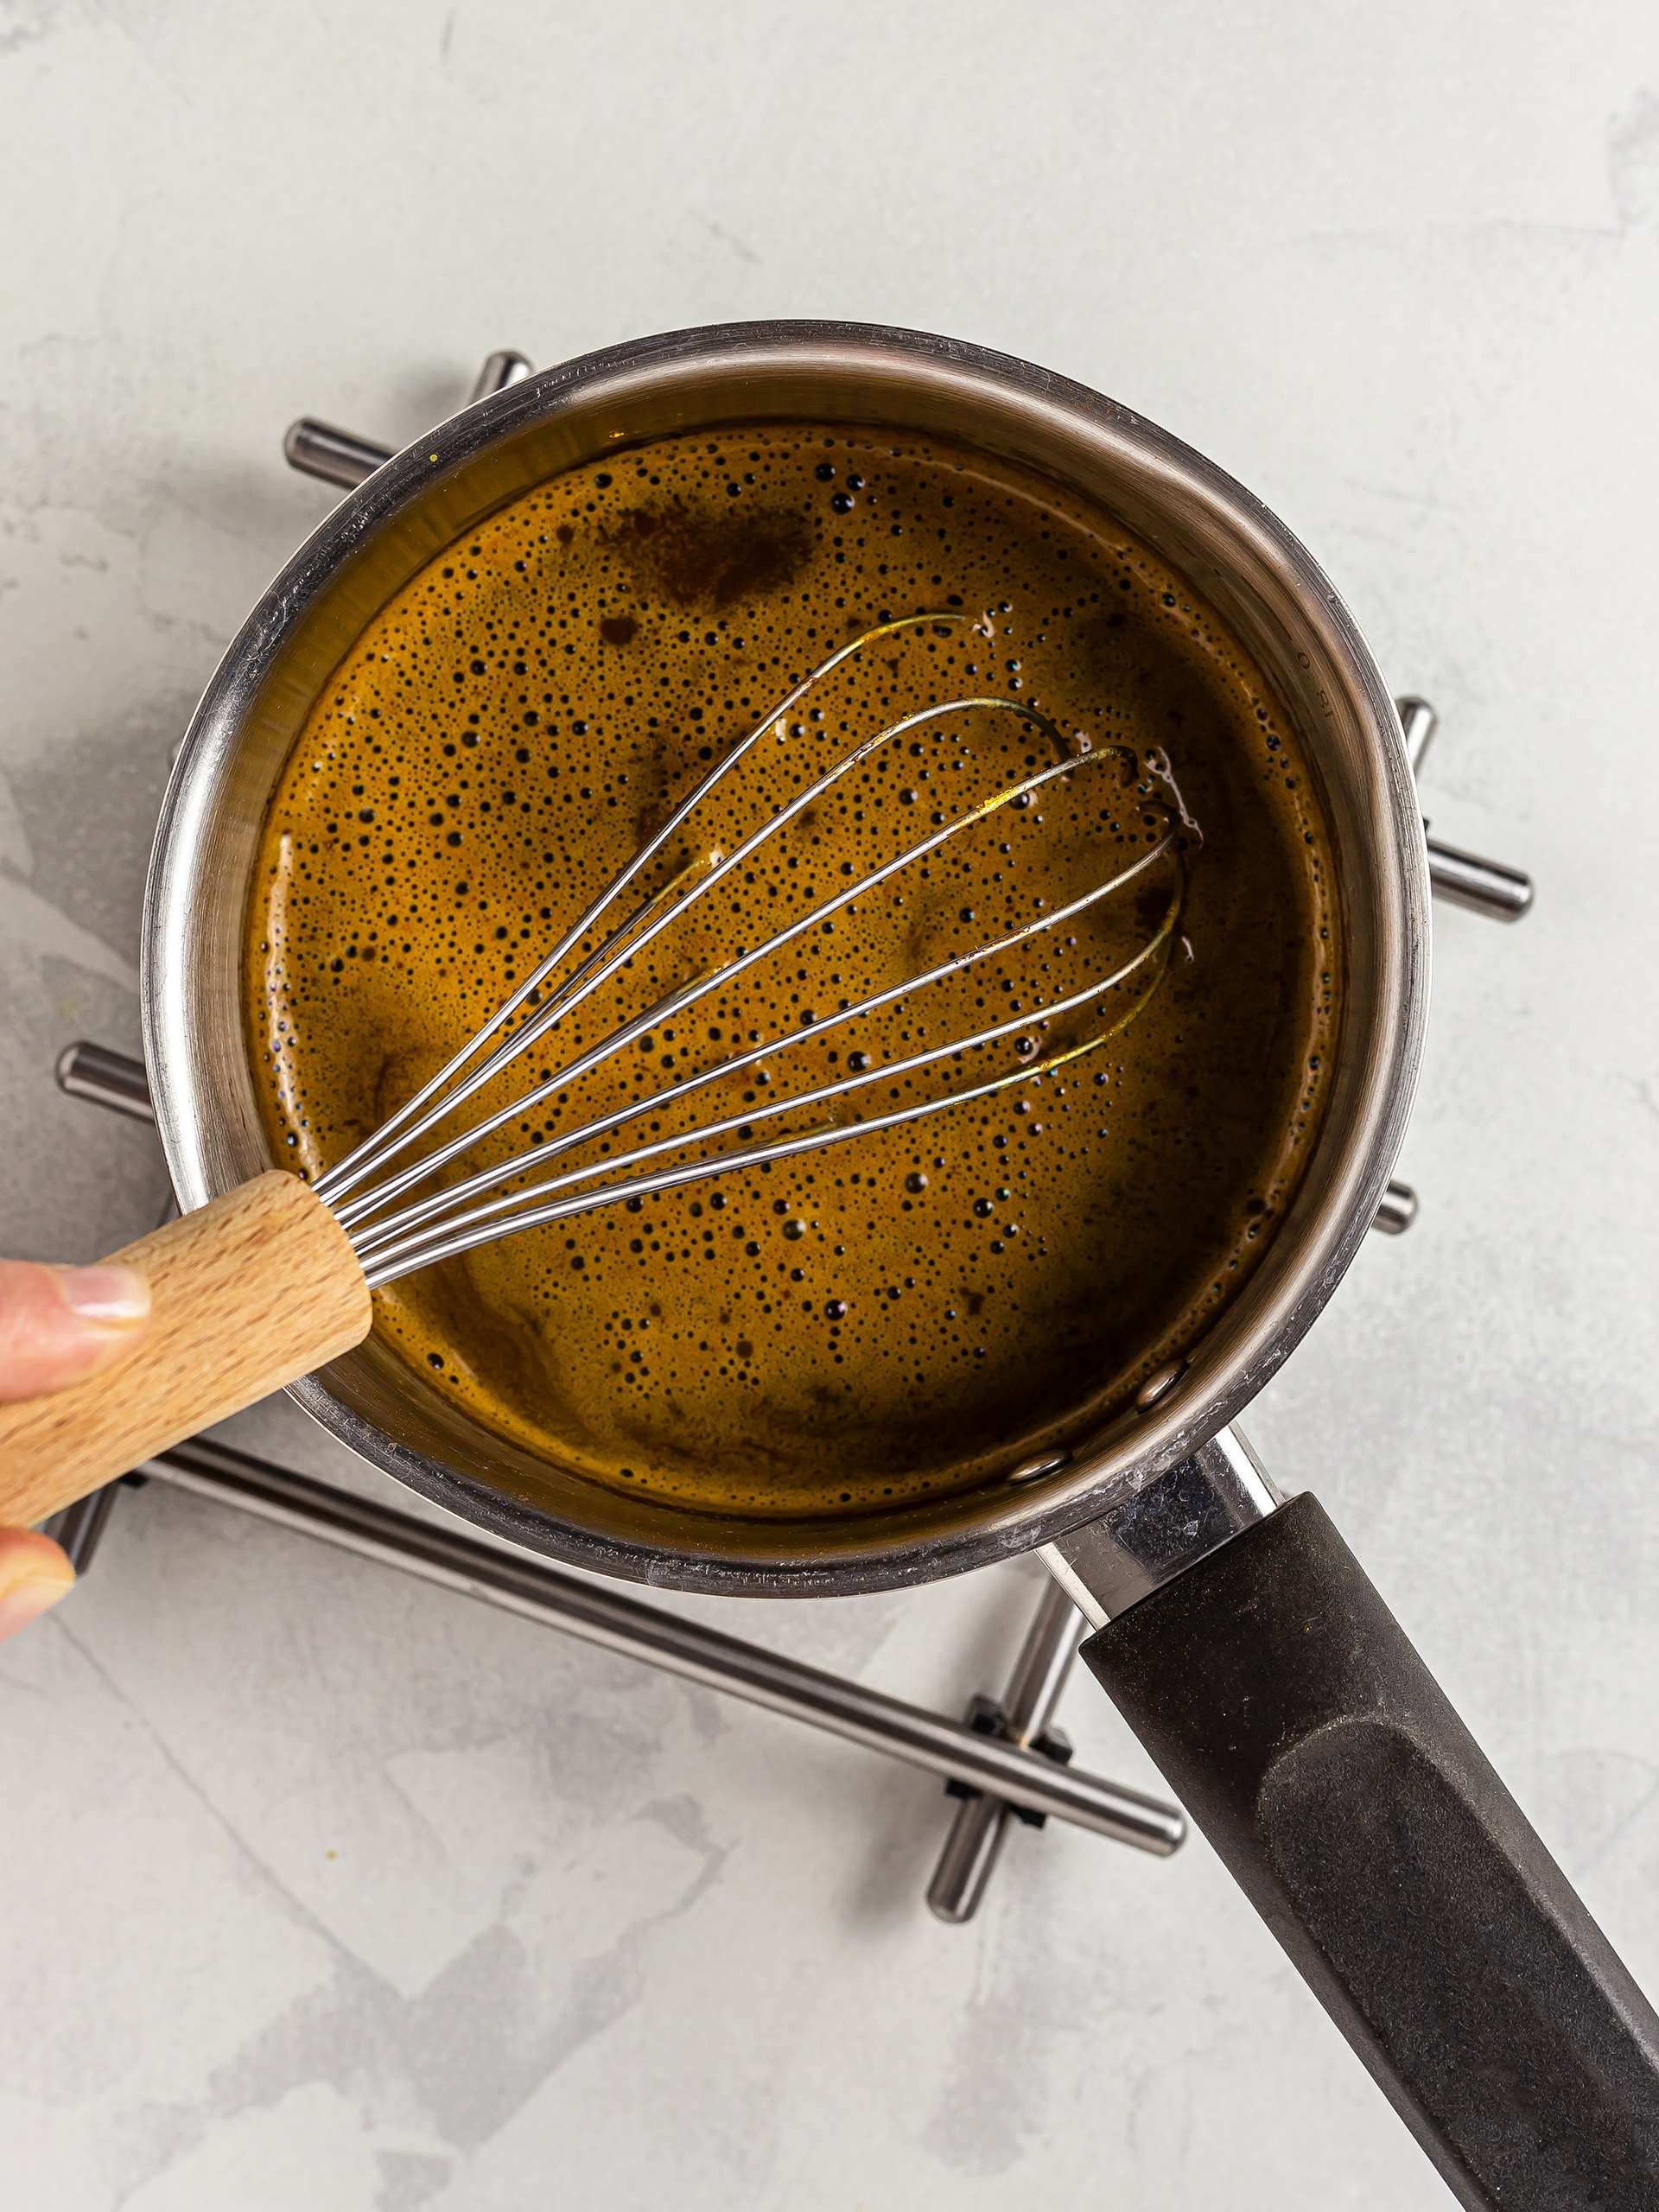 Whisked turmeric hot chocolate to make it foamy